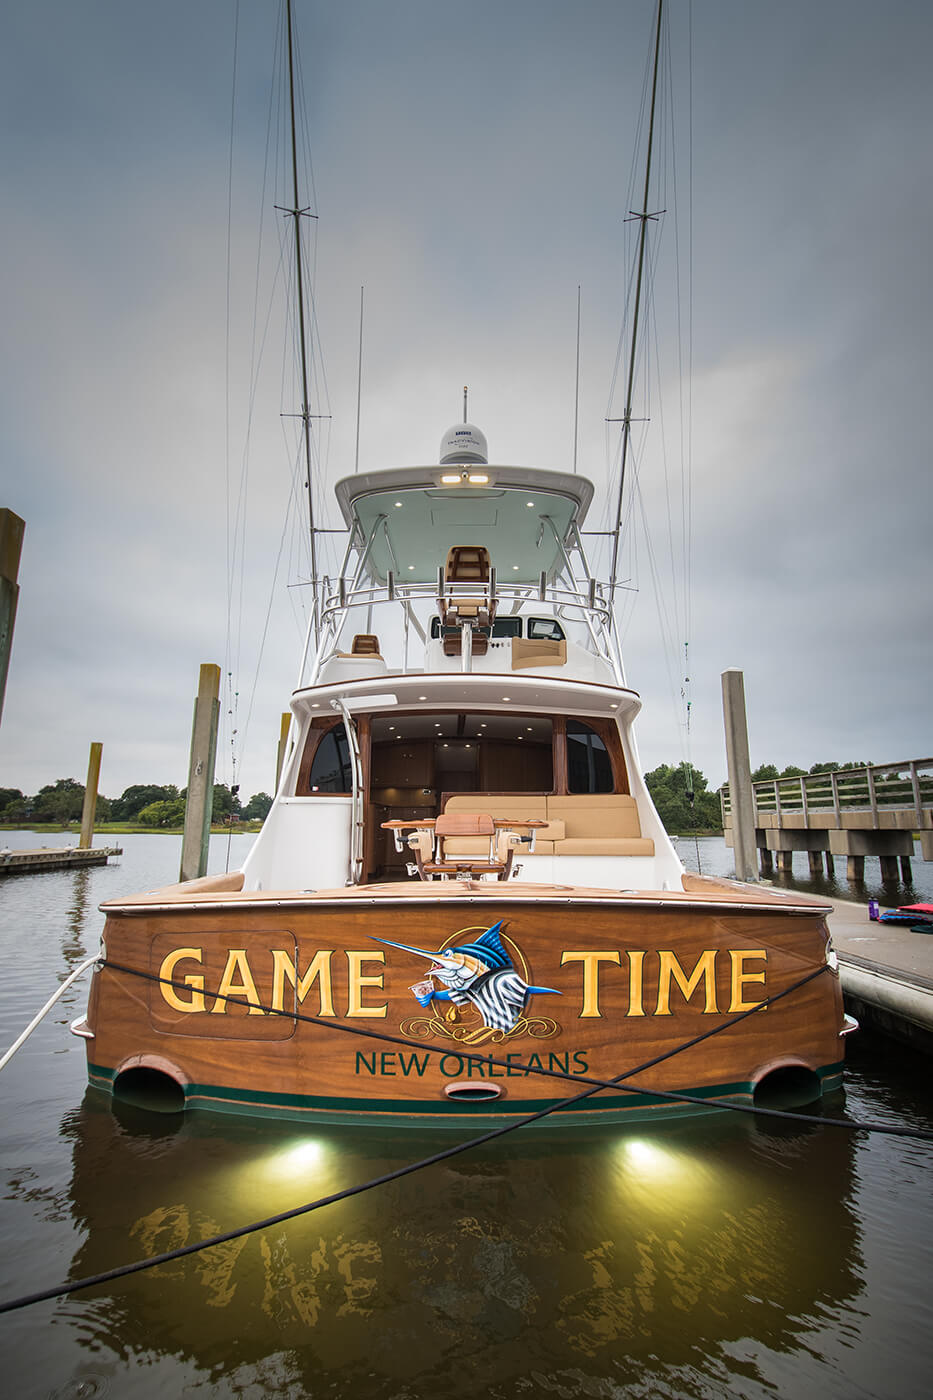 Game Time New Orleans Louisiana Boat Transom